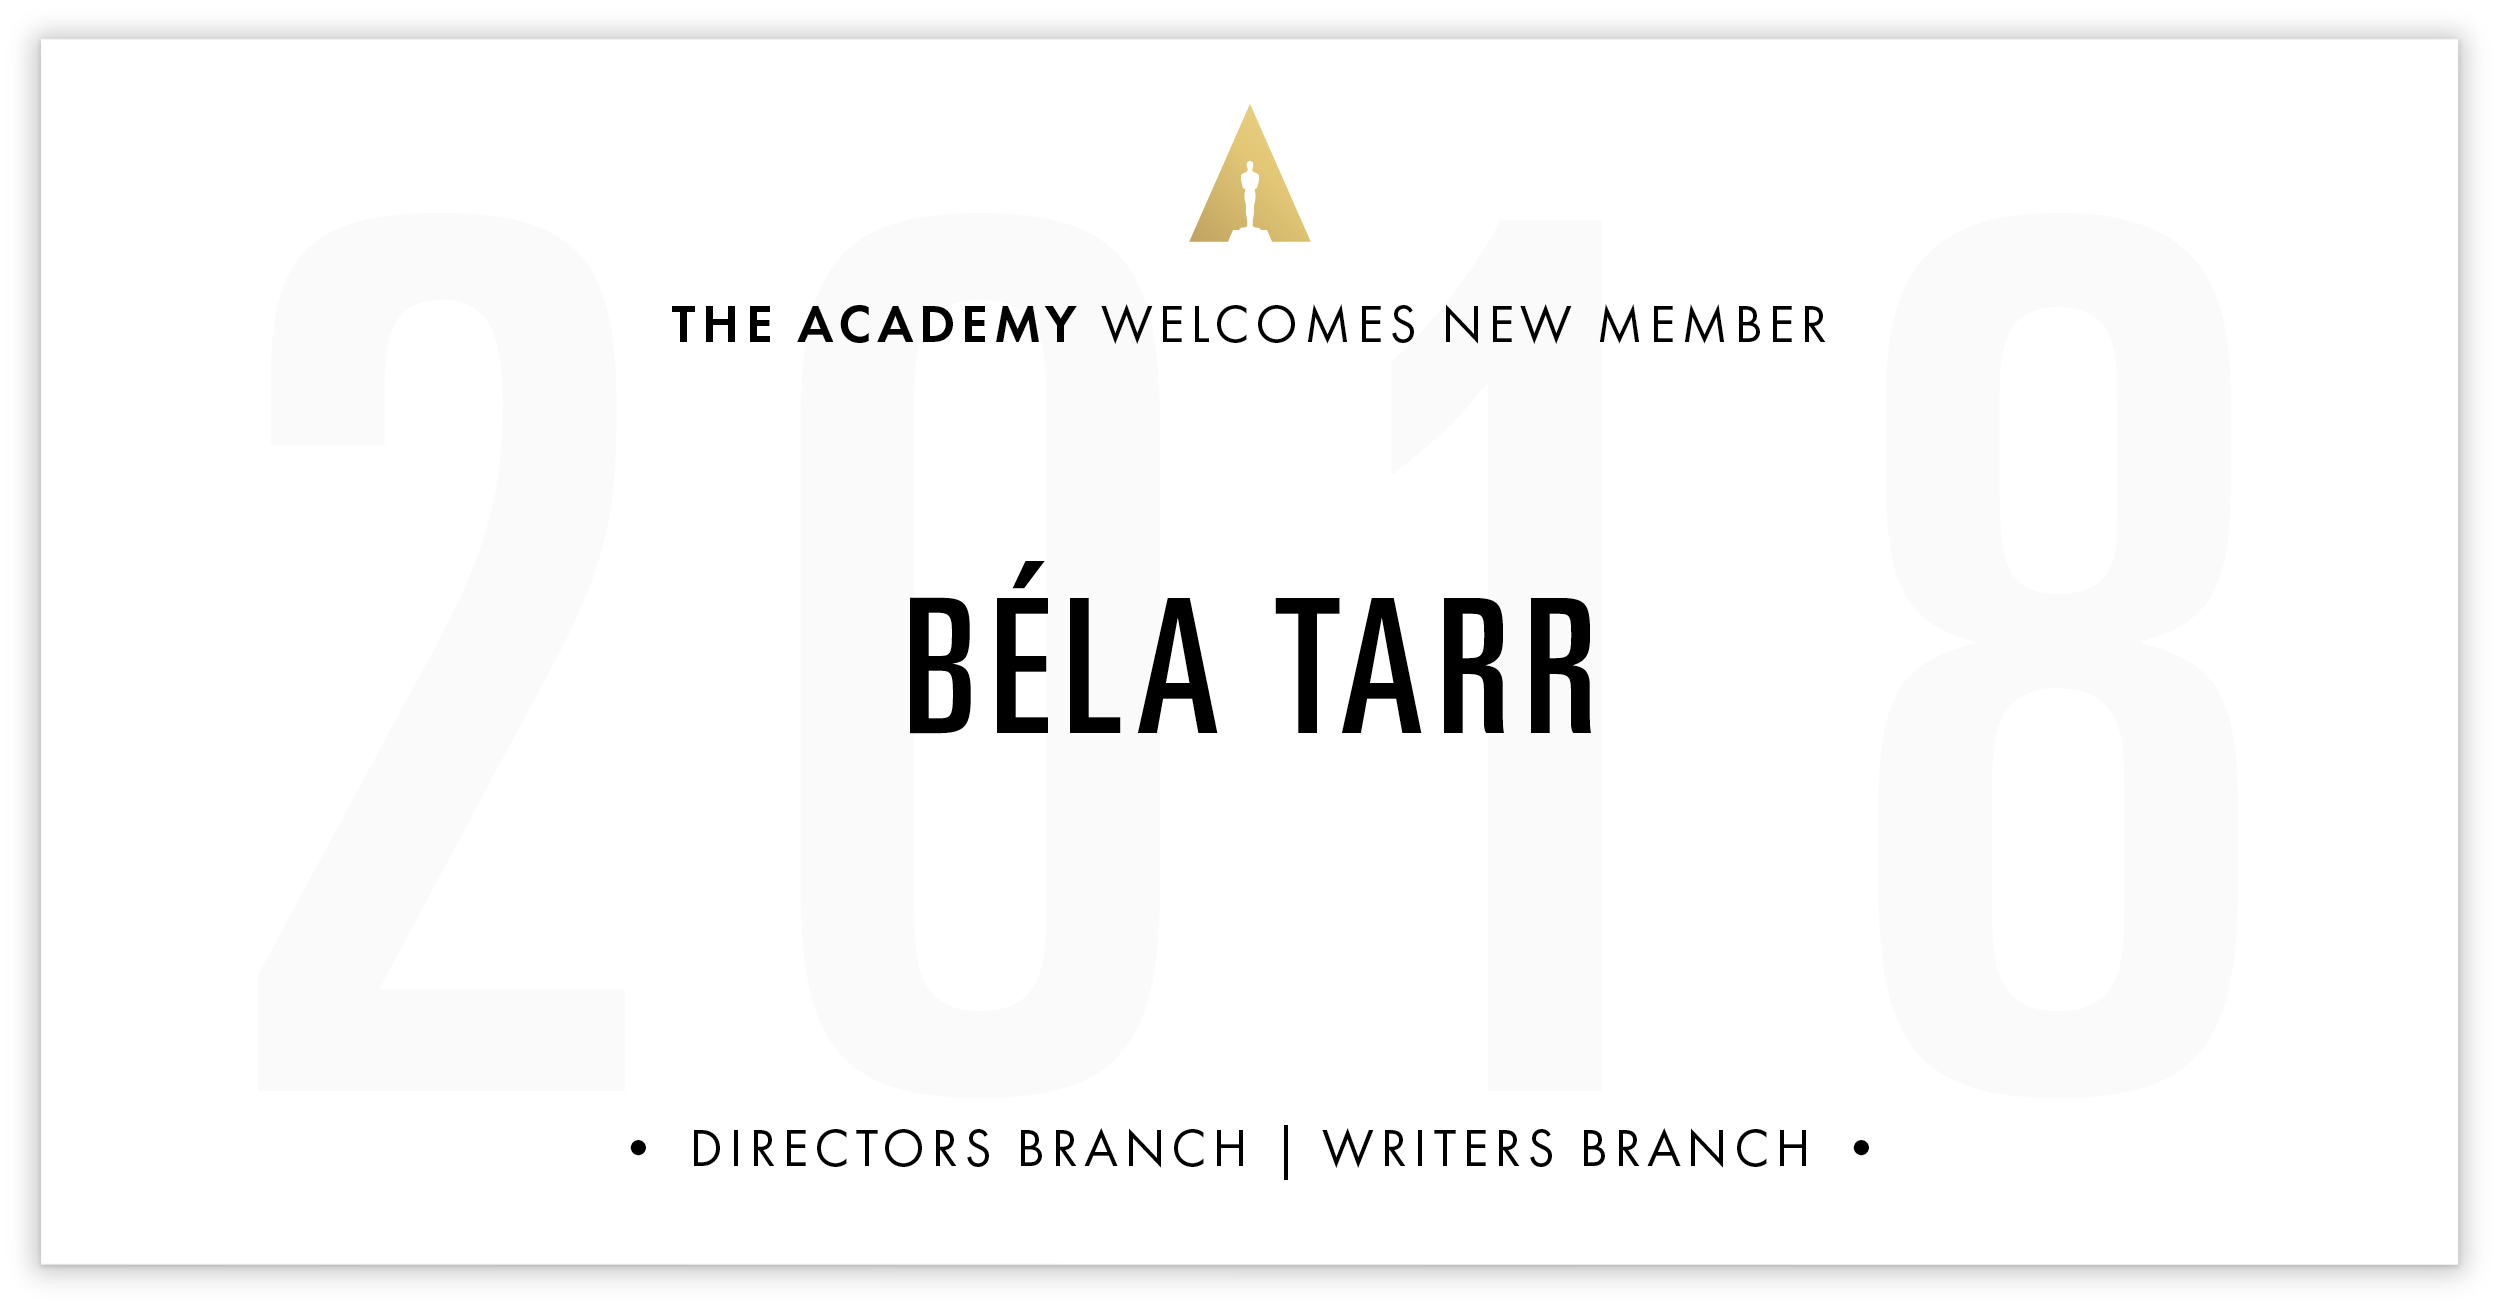 Béla Tarr is invited!